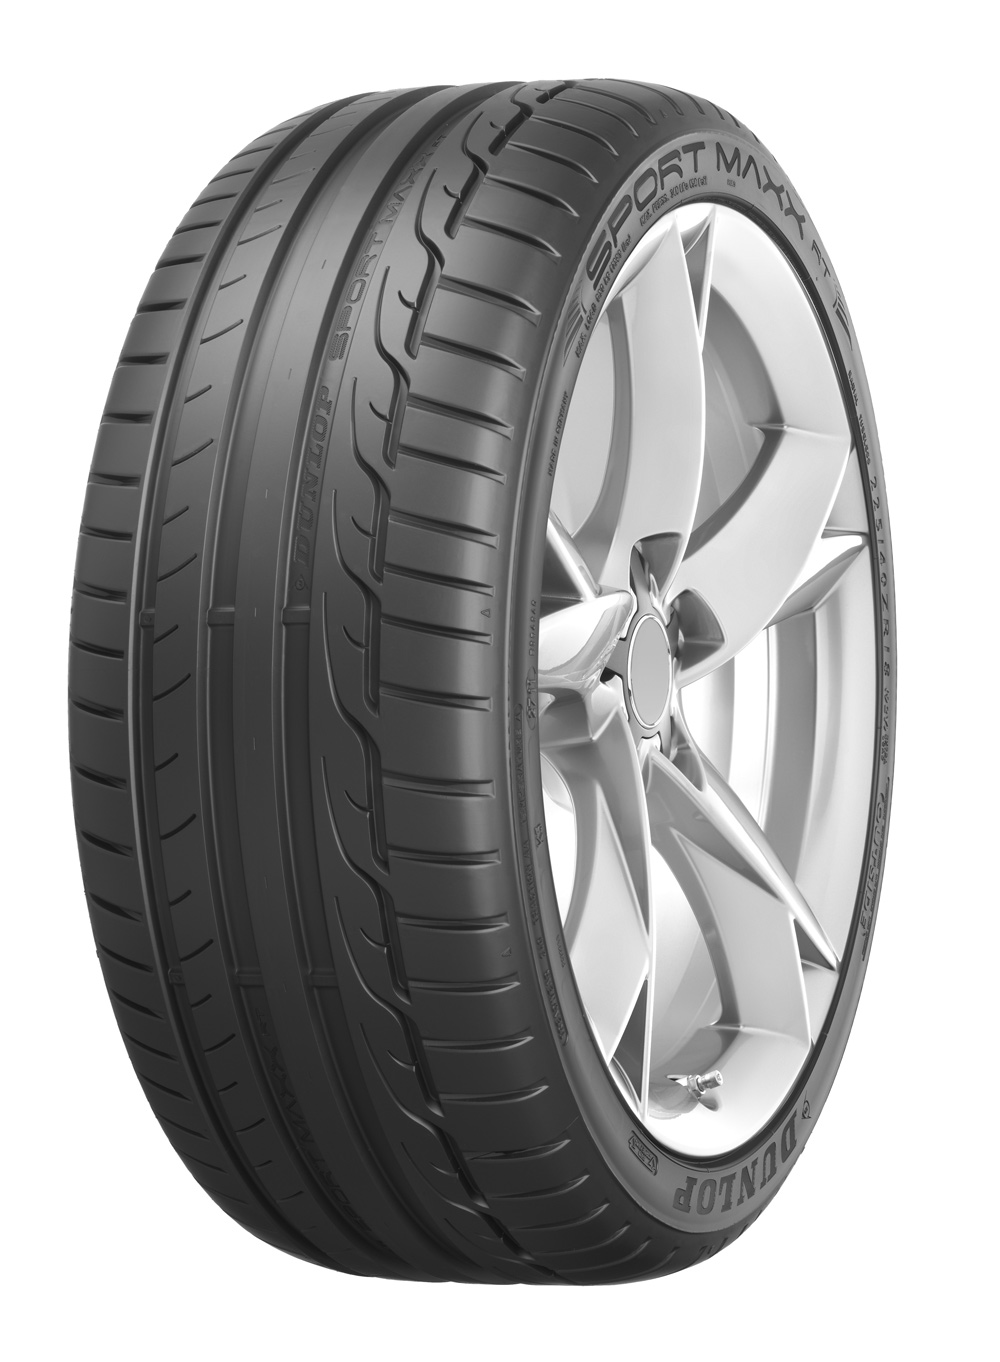 Anvelopa vara DUNLOP SP Maxx RT 225/45 R17 91W